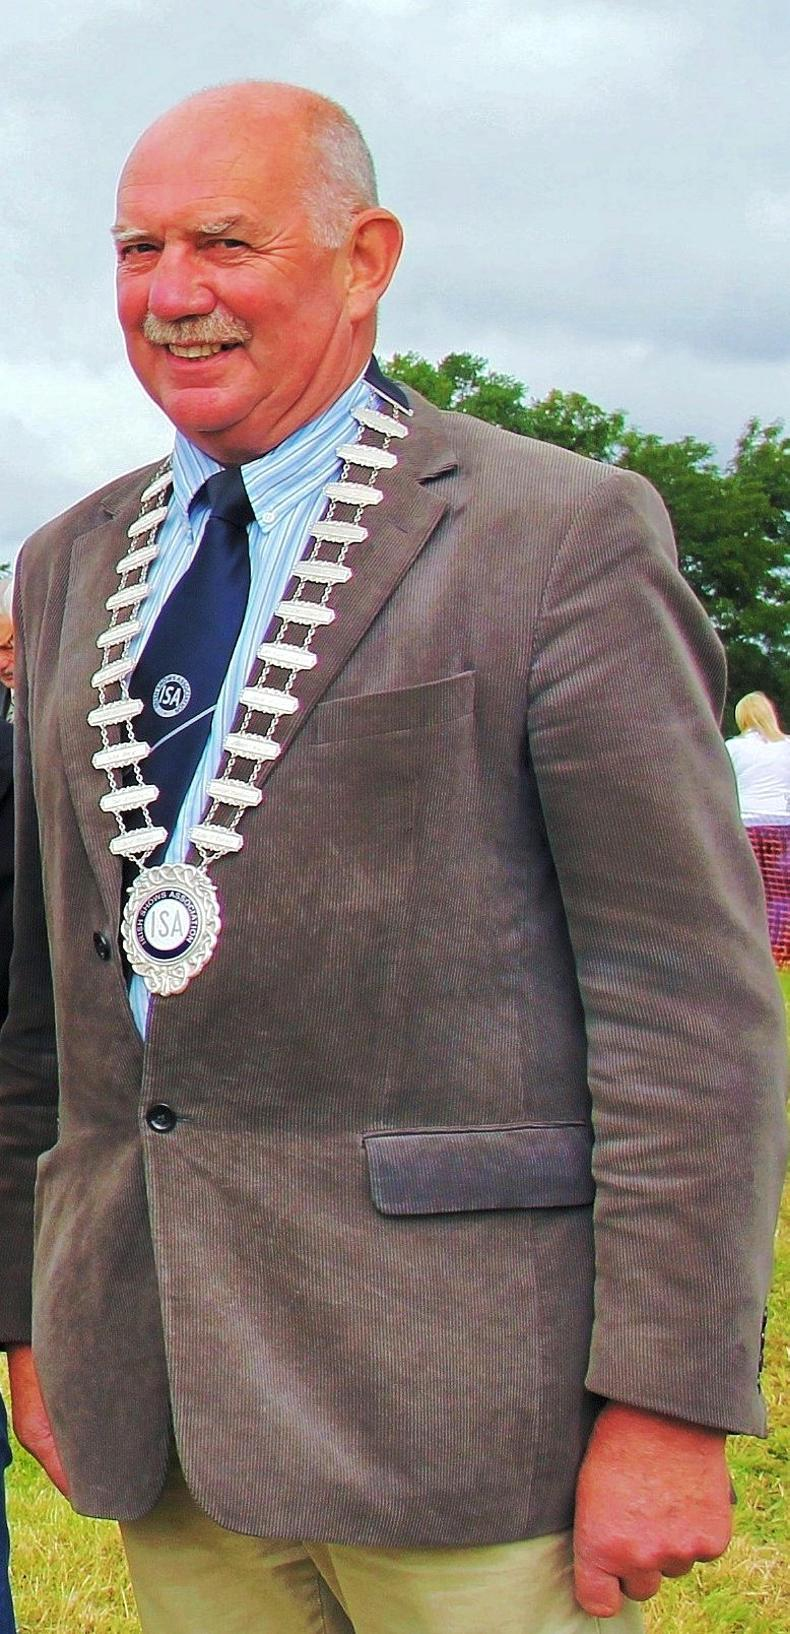 Corbet - agricultural shows face further regulations